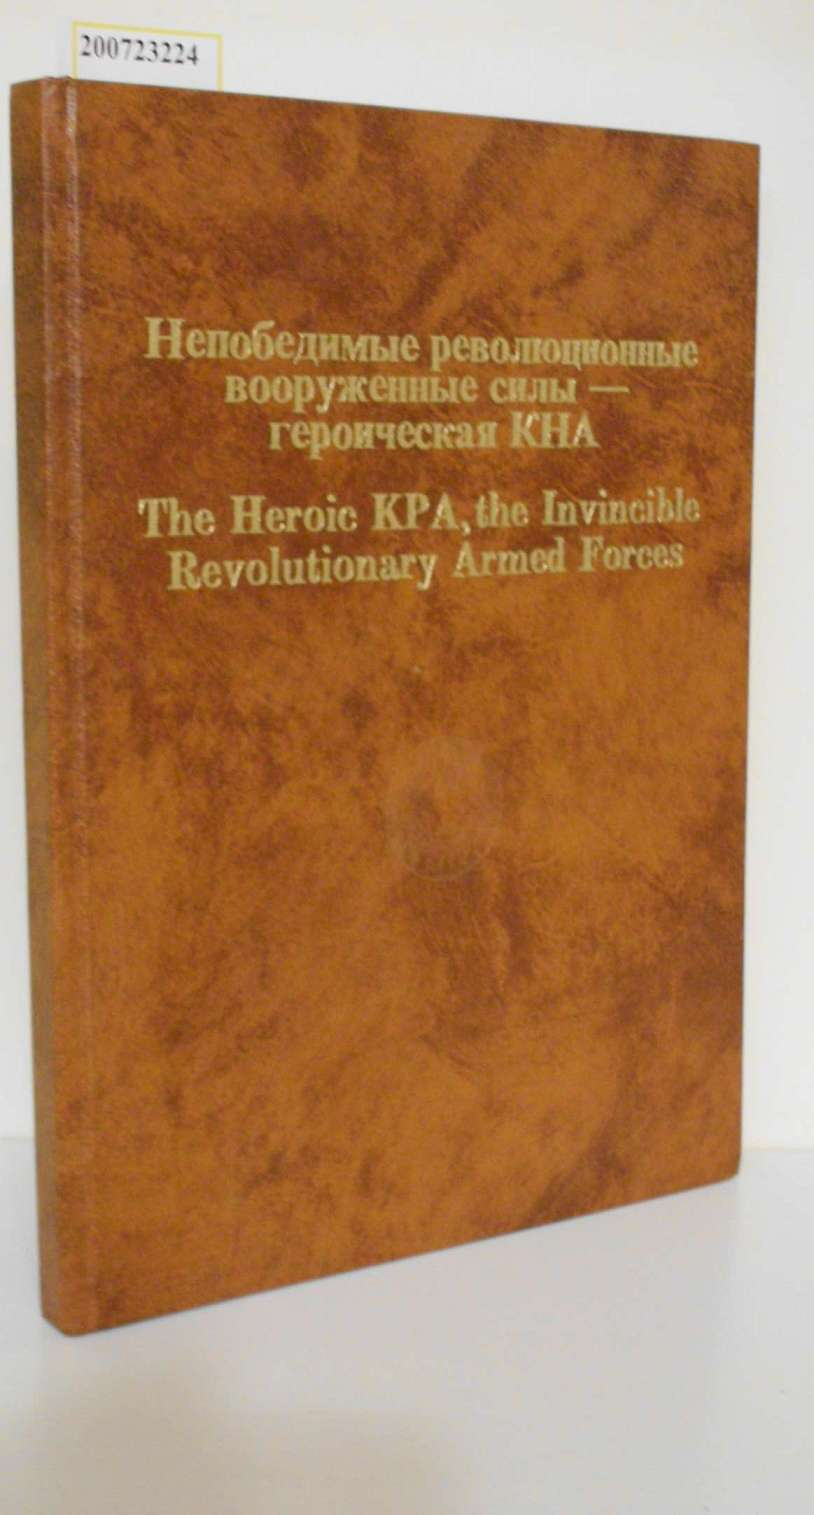 The Heroic KPA, the Invincible Revolutionary Armed Forces